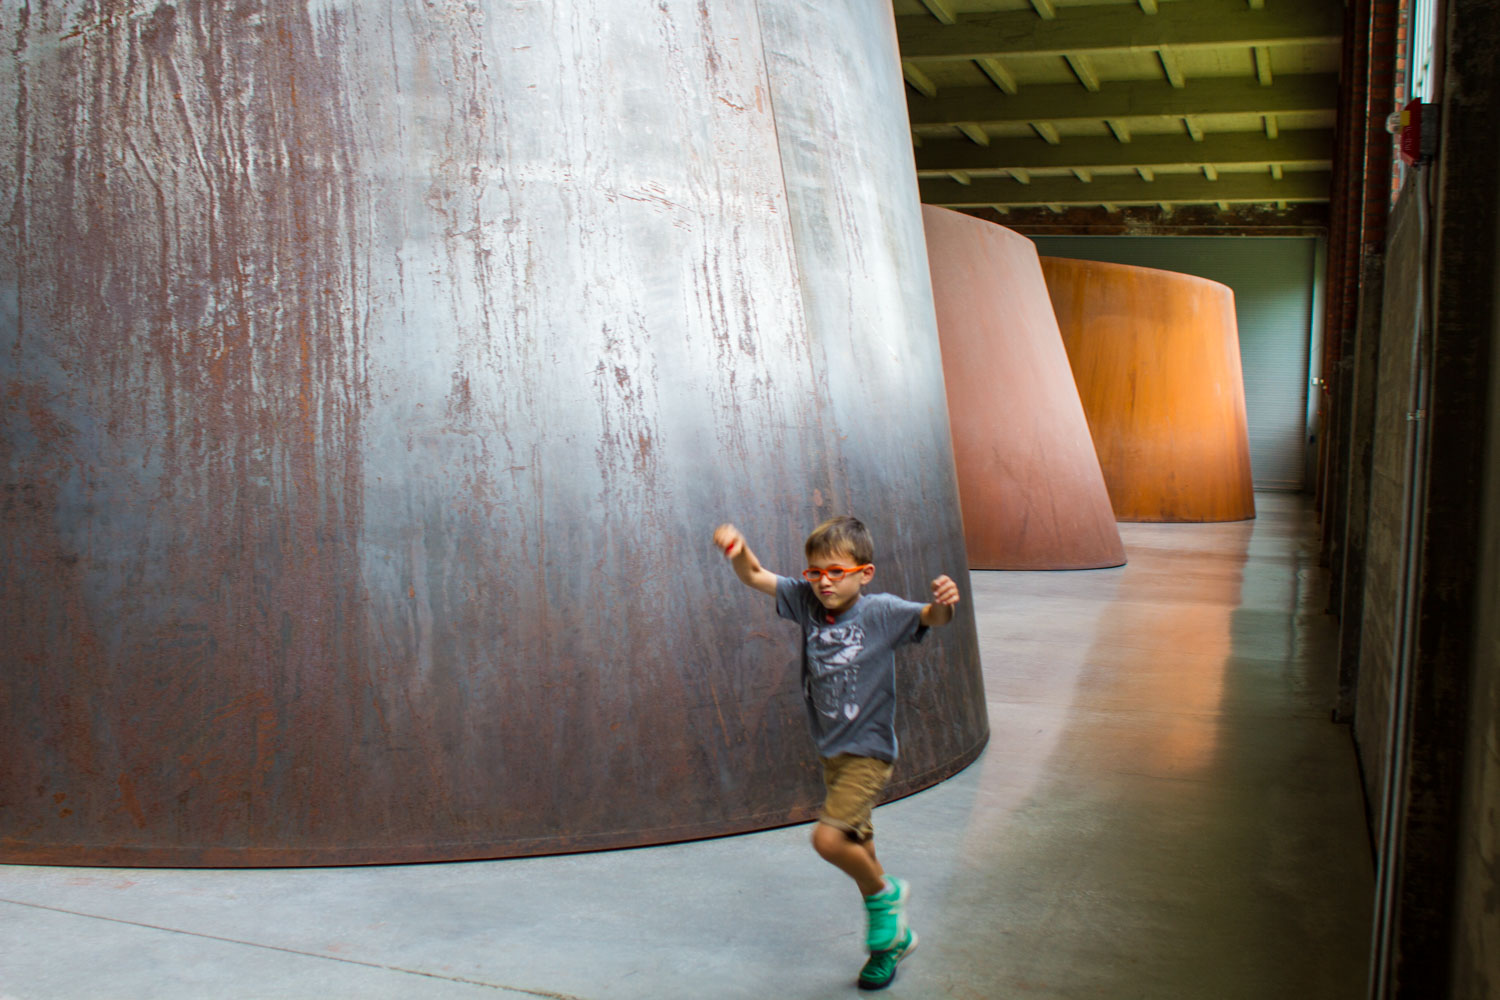 Torqued Ellipse by RIchard Serra at Dia:Beacon